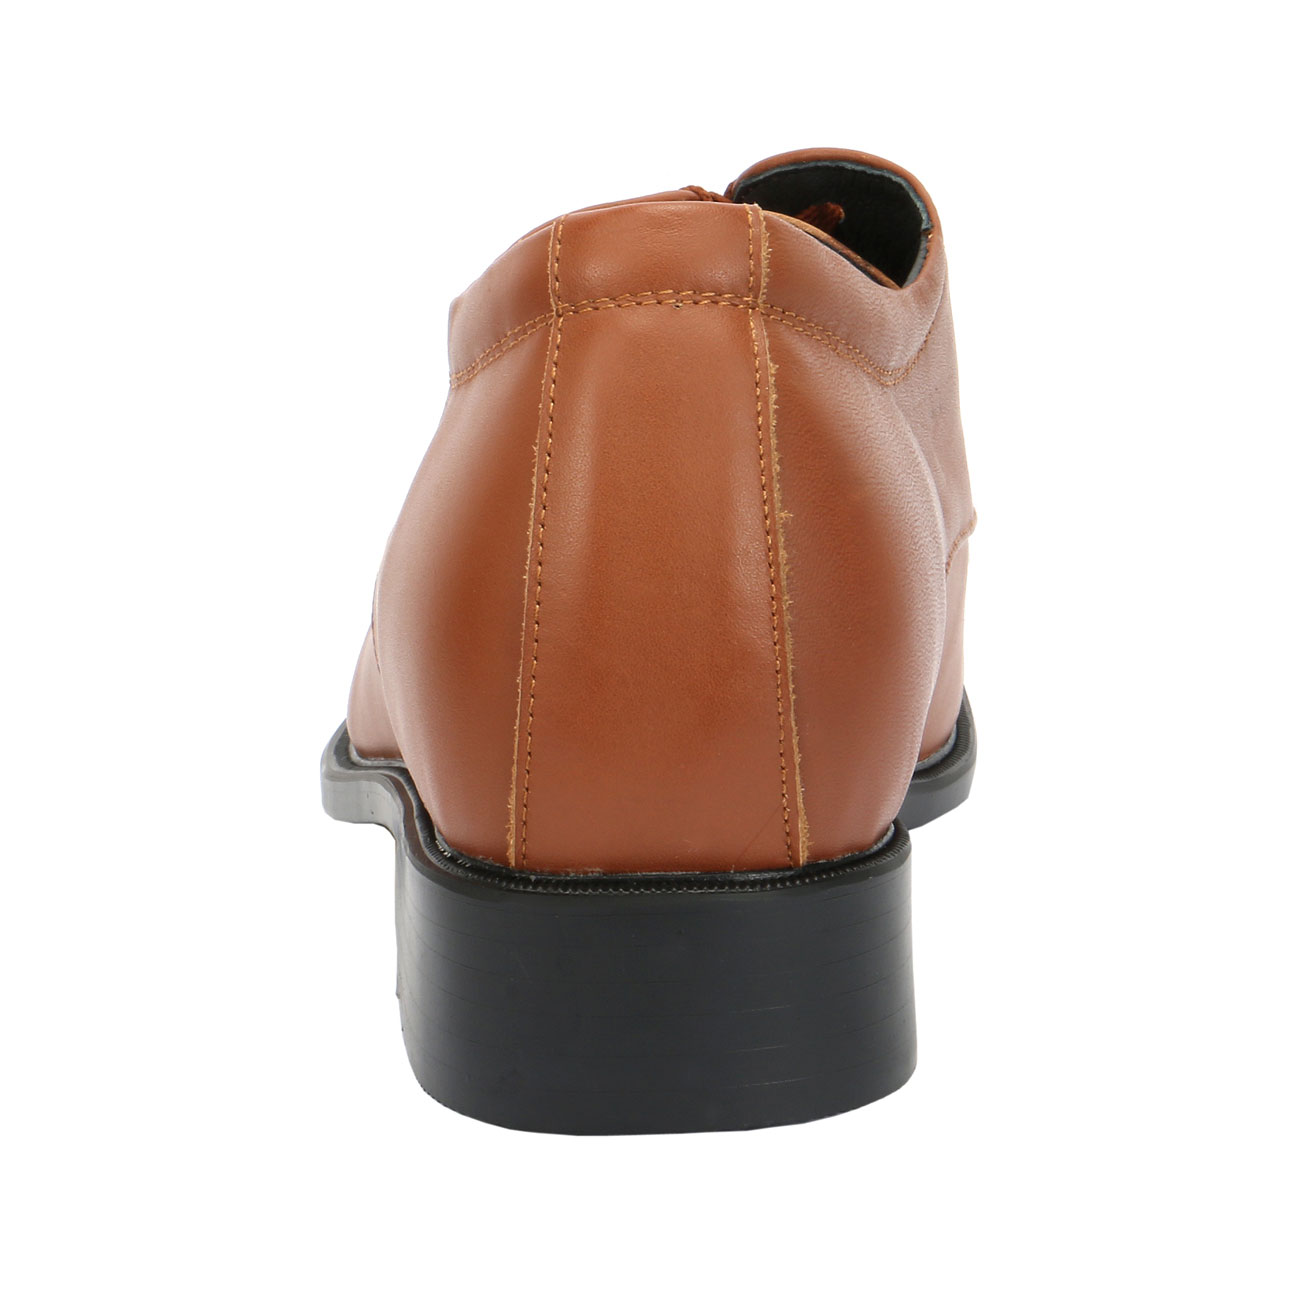 Guys shoes for increasing height-3